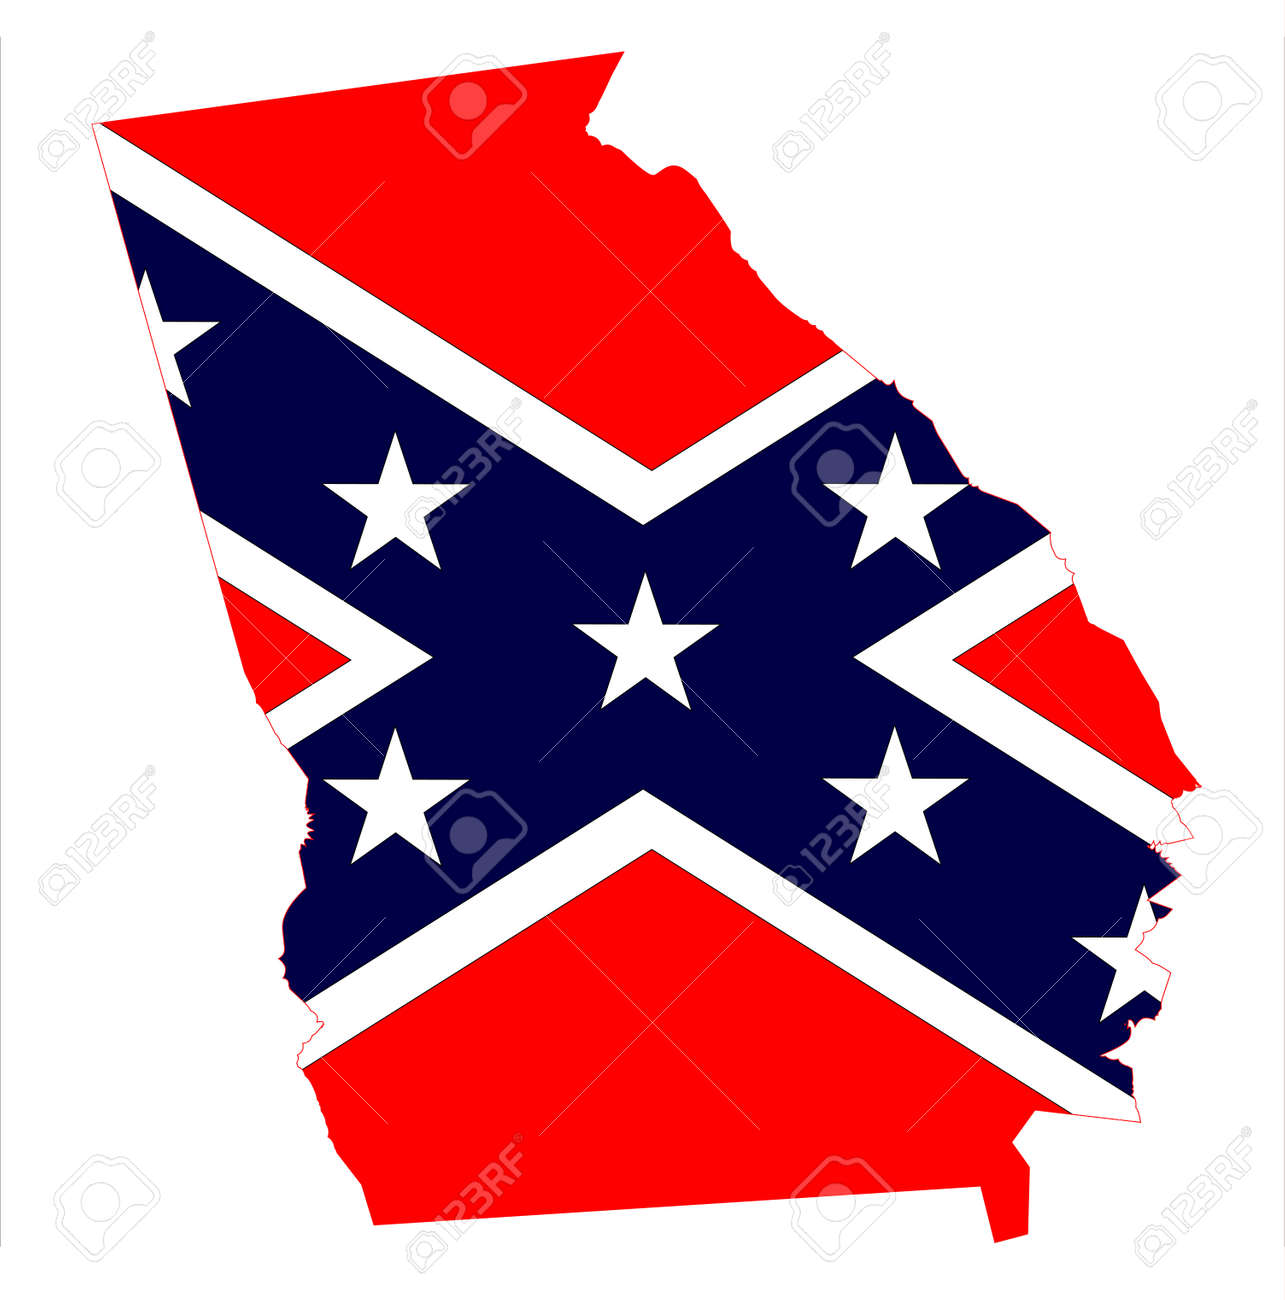 State Map Outline Of Georgia With Confederate Flag Over A White - Ga map vector